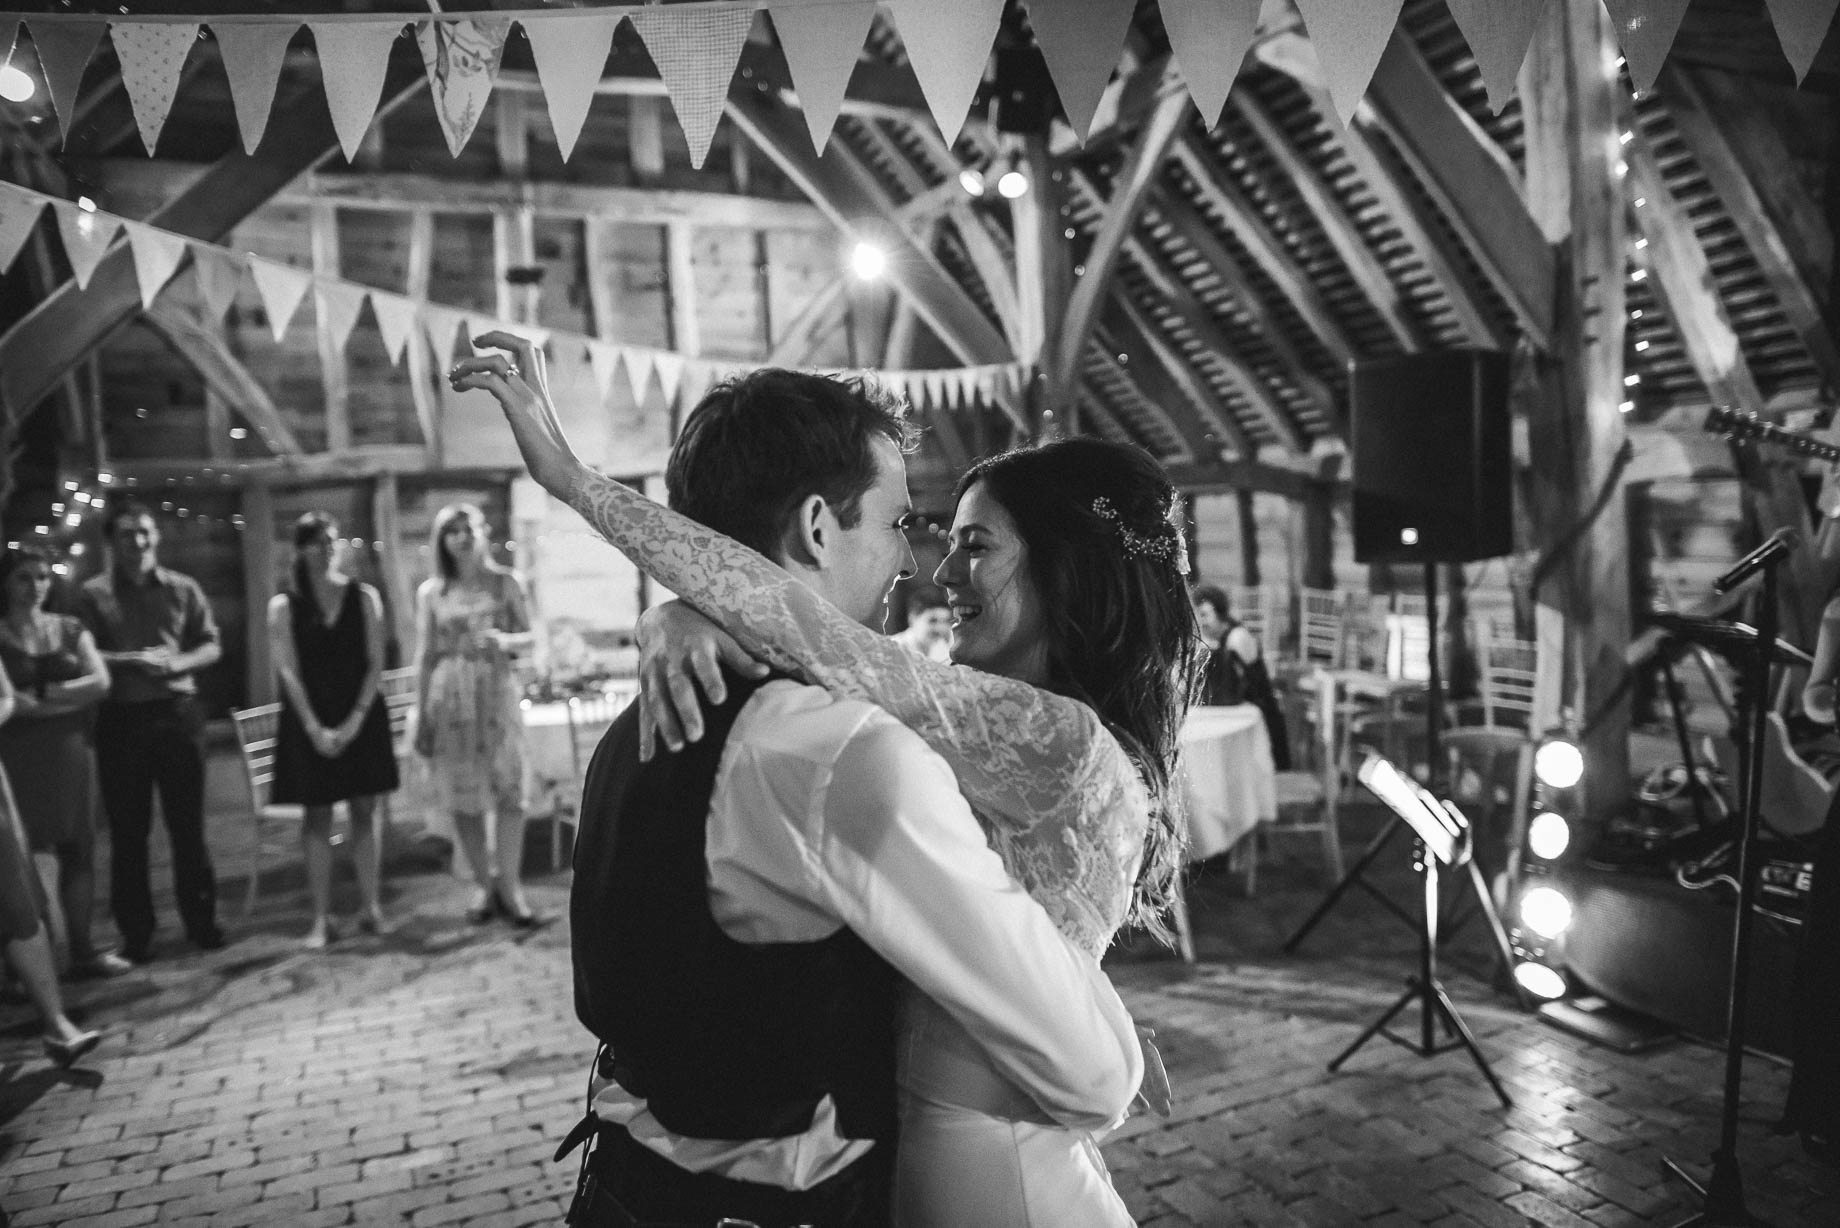 Gildings Barn wedding photography - Sarah and Steve (178 of 190)